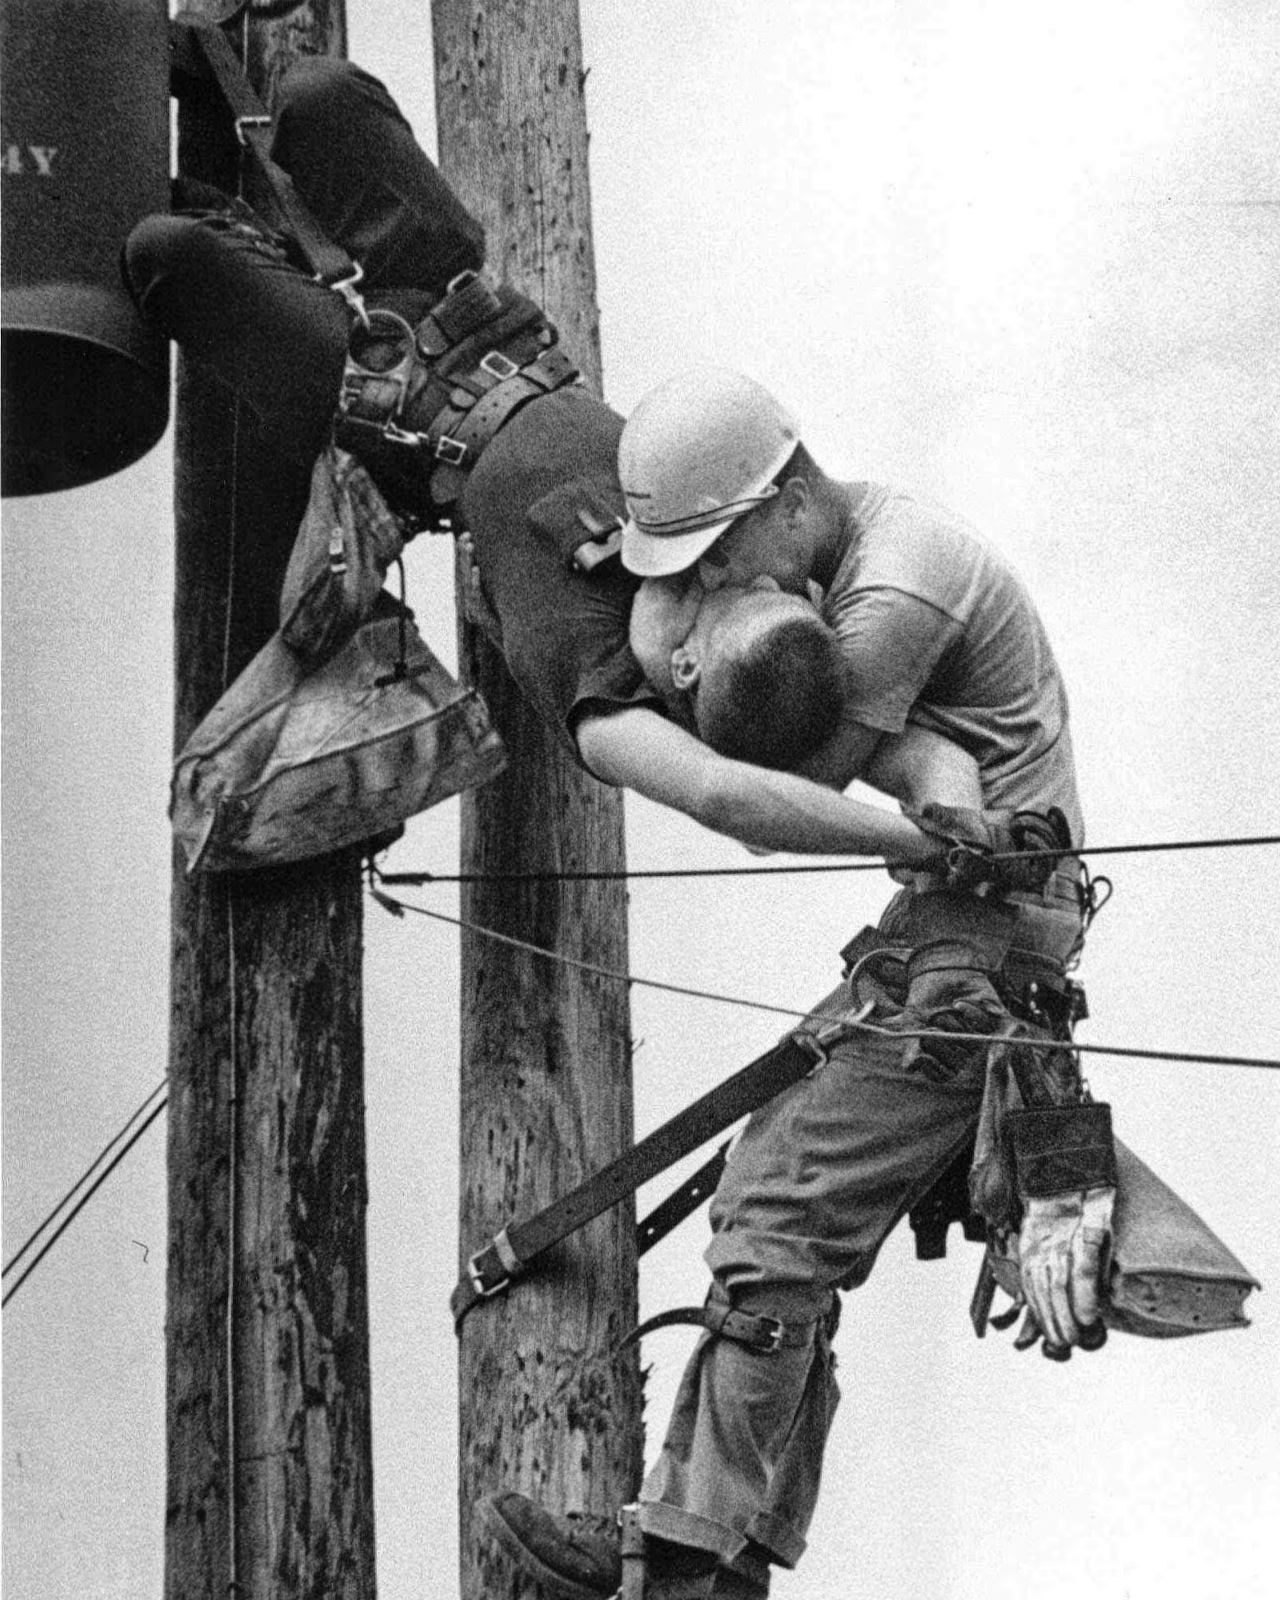 A Moment in Linemen History: The Story Behind the Pulitzer